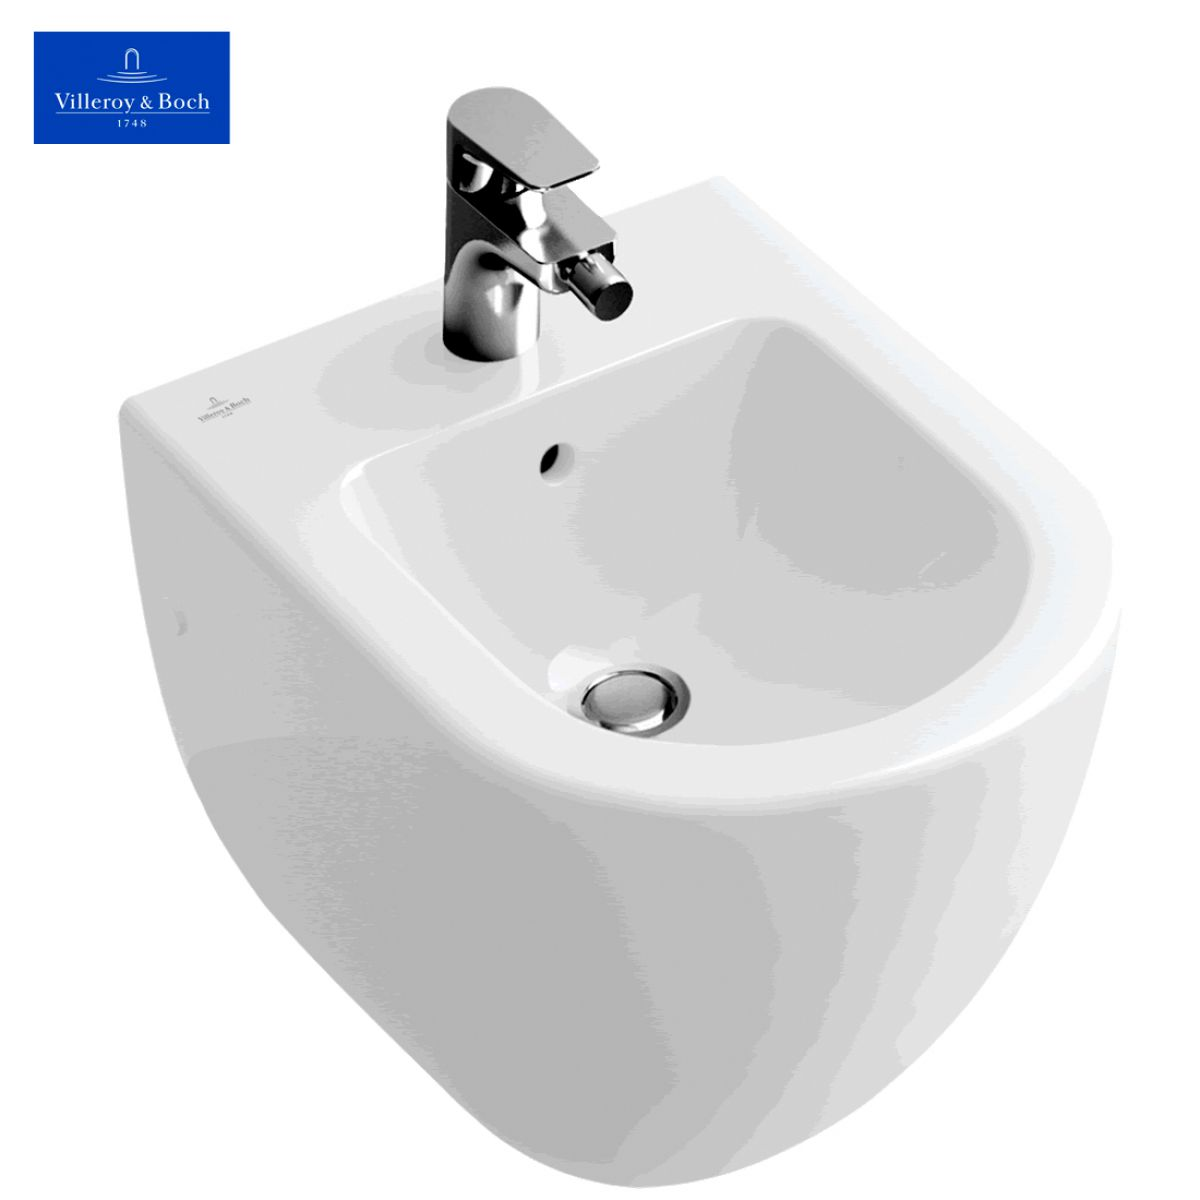 villeroy and boch subway compact wall mounted bidet uk. Black Bedroom Furniture Sets. Home Design Ideas